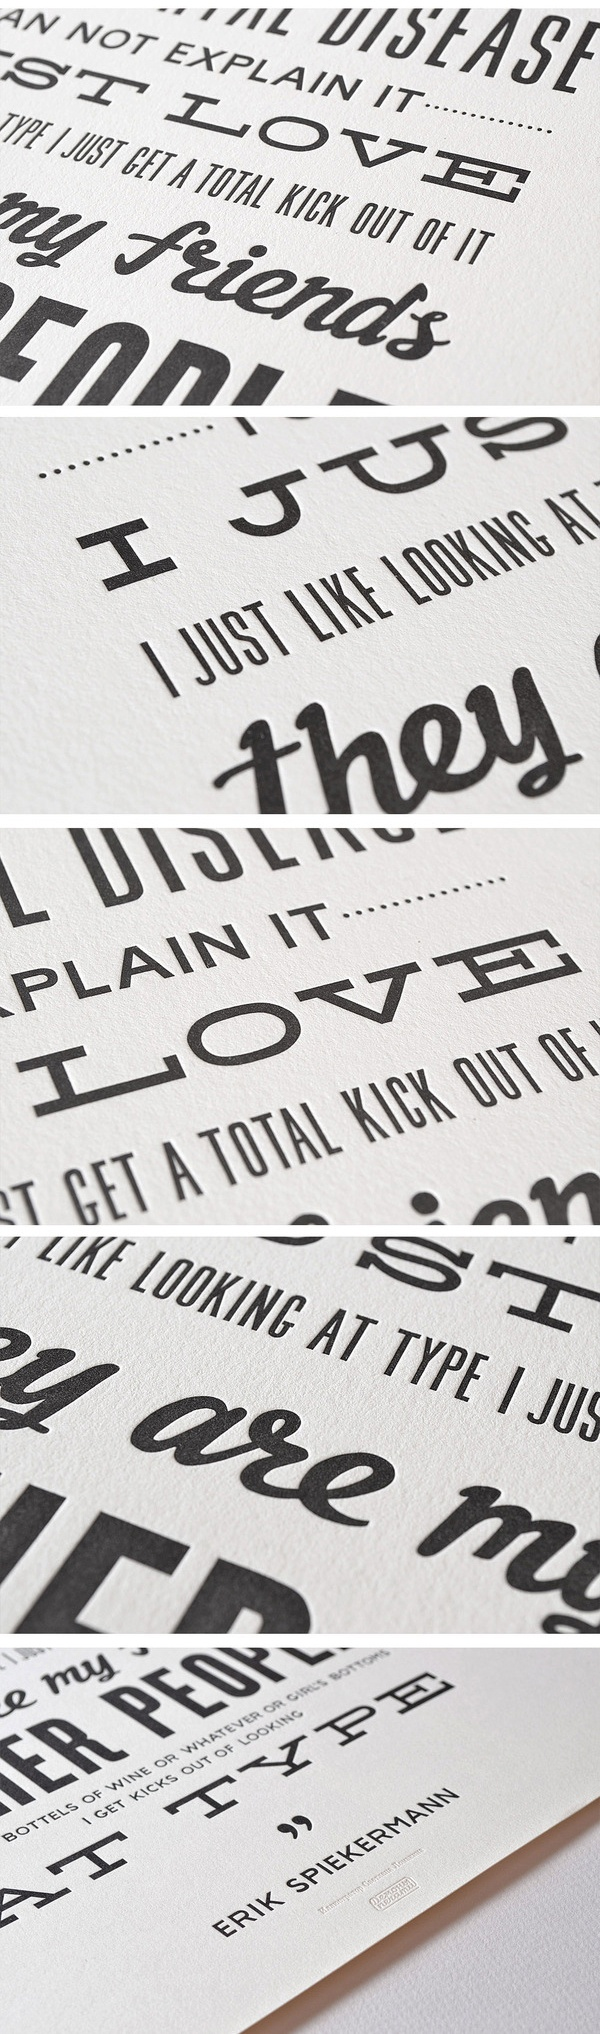 Best Design  Letterpress Images On   Graph Design